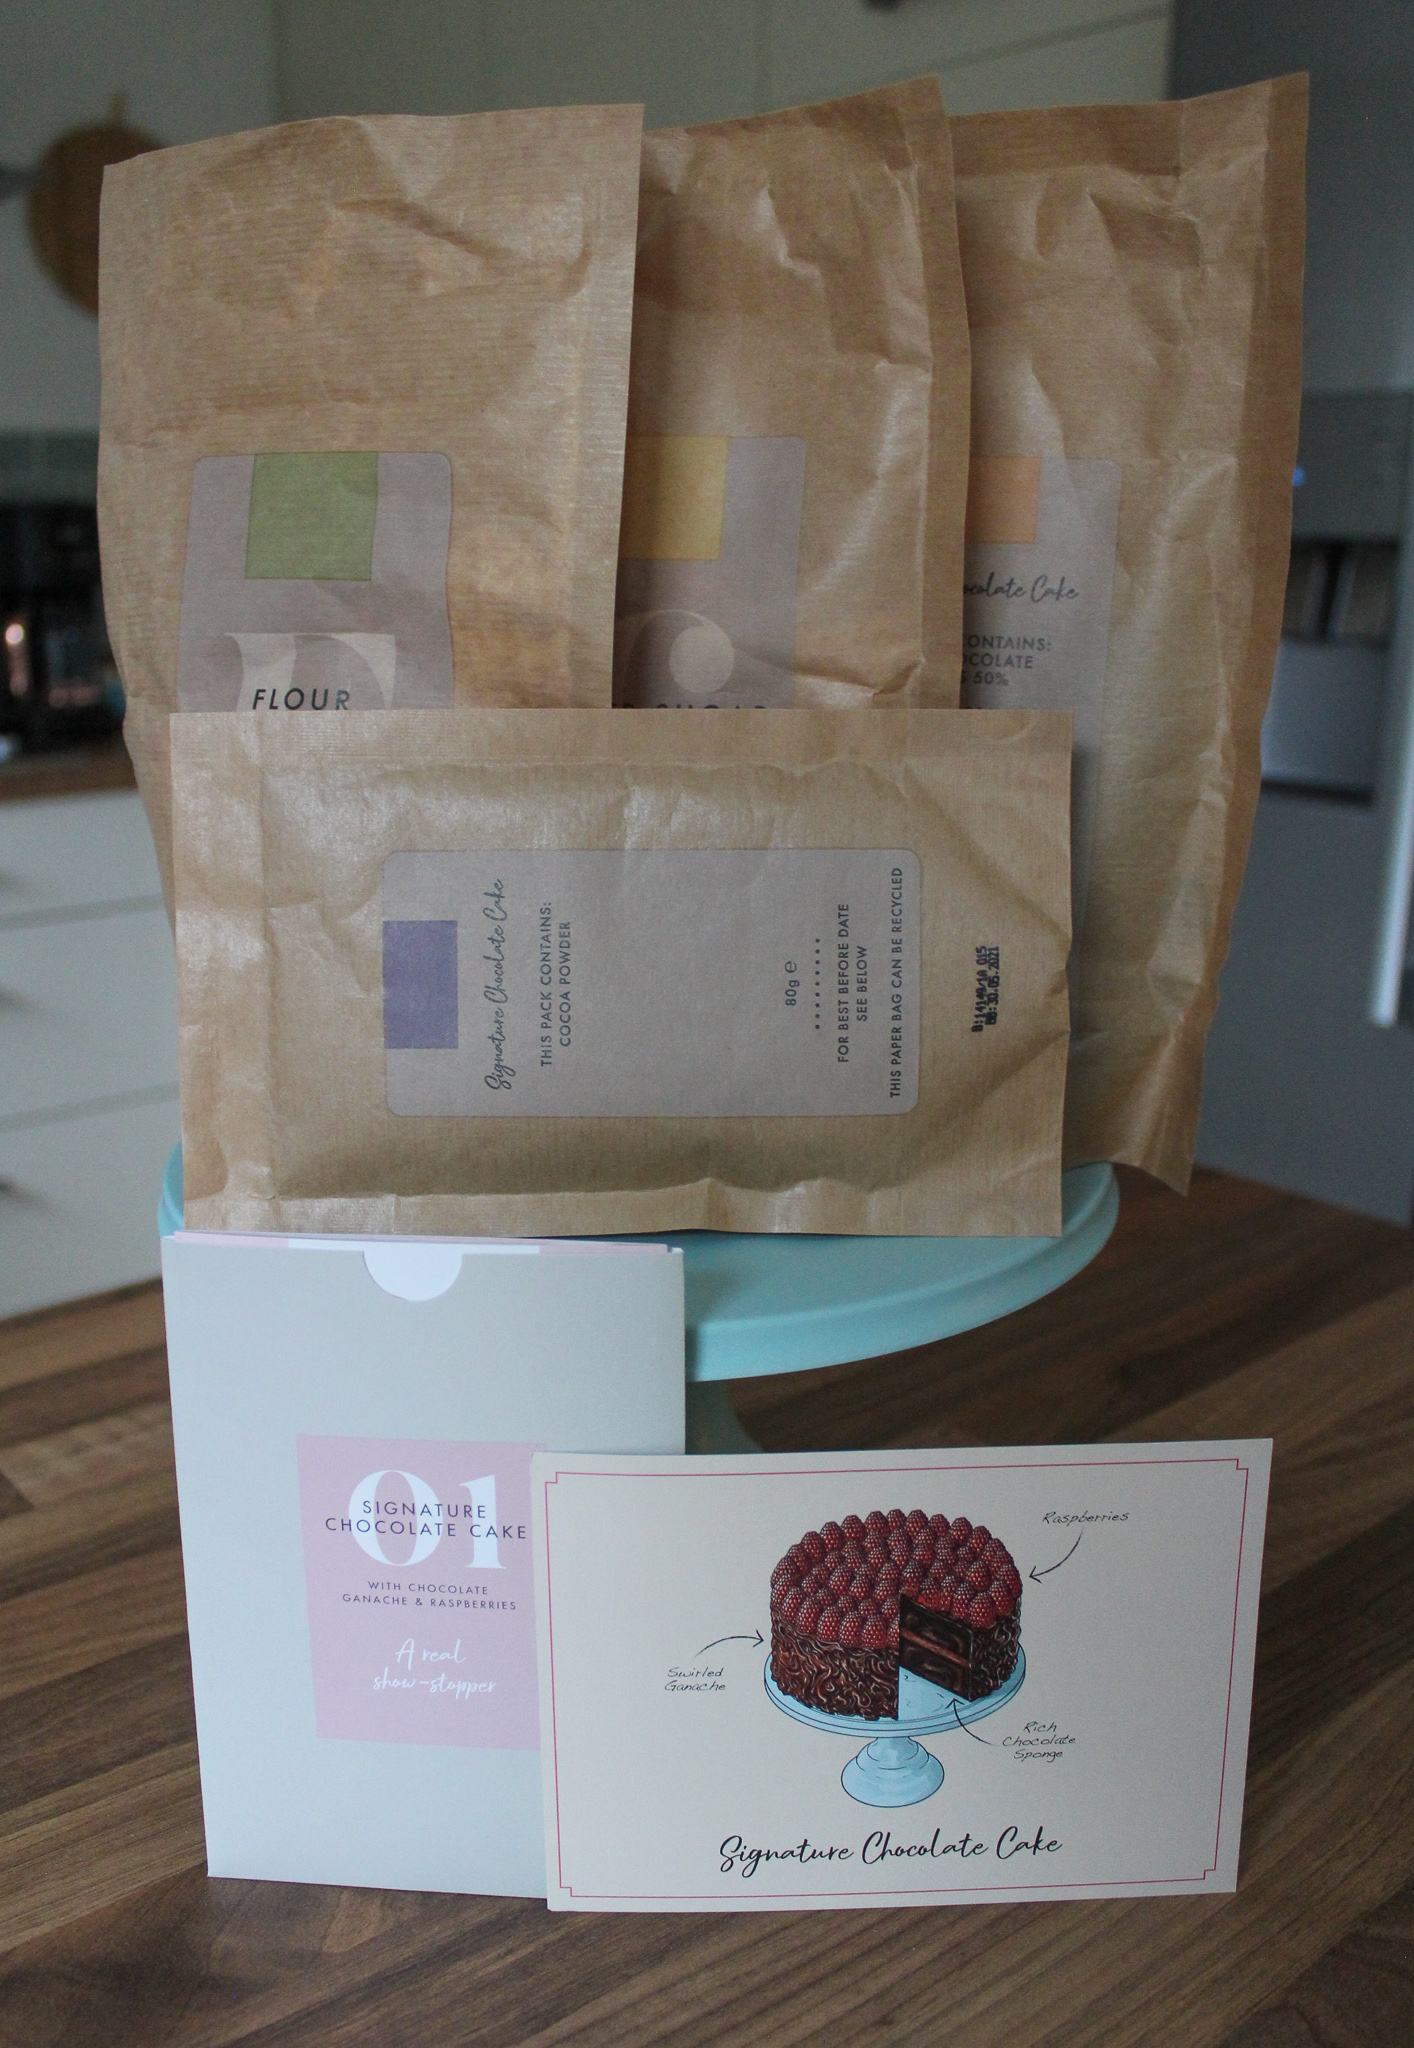 All of the pre-measured dry ingredients in unopened bags, sat on top of the blue bamboo cake stand, with recipe card at front.